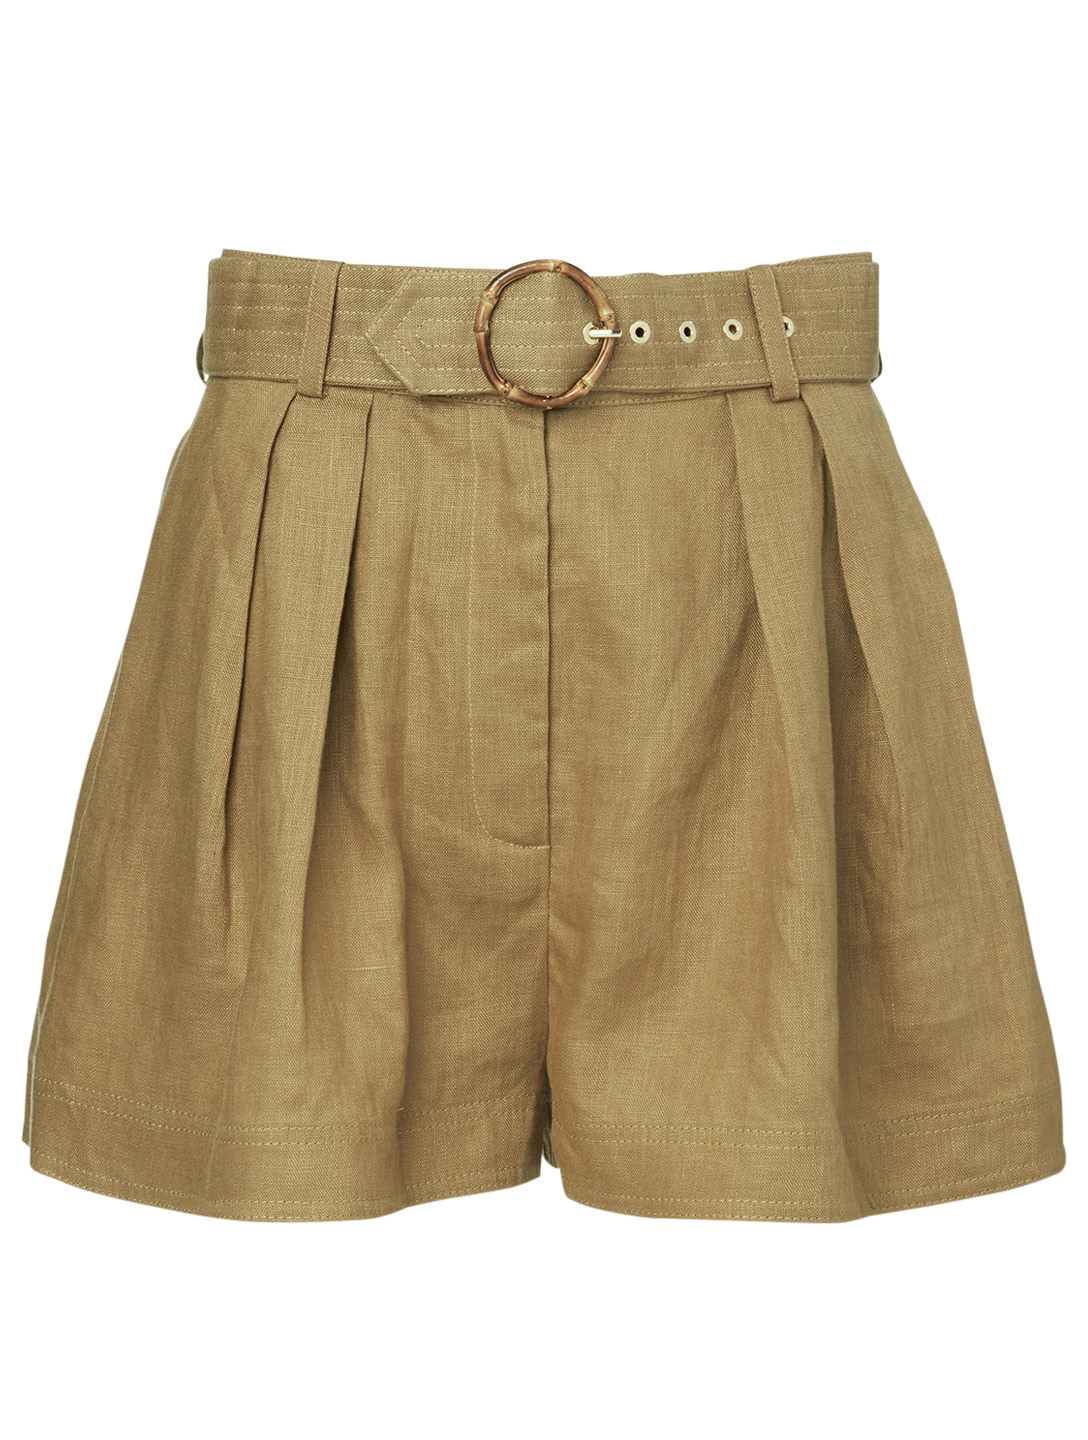 ZIMMERMANN Short Super Eight en lin à taille haute Femmes Beige